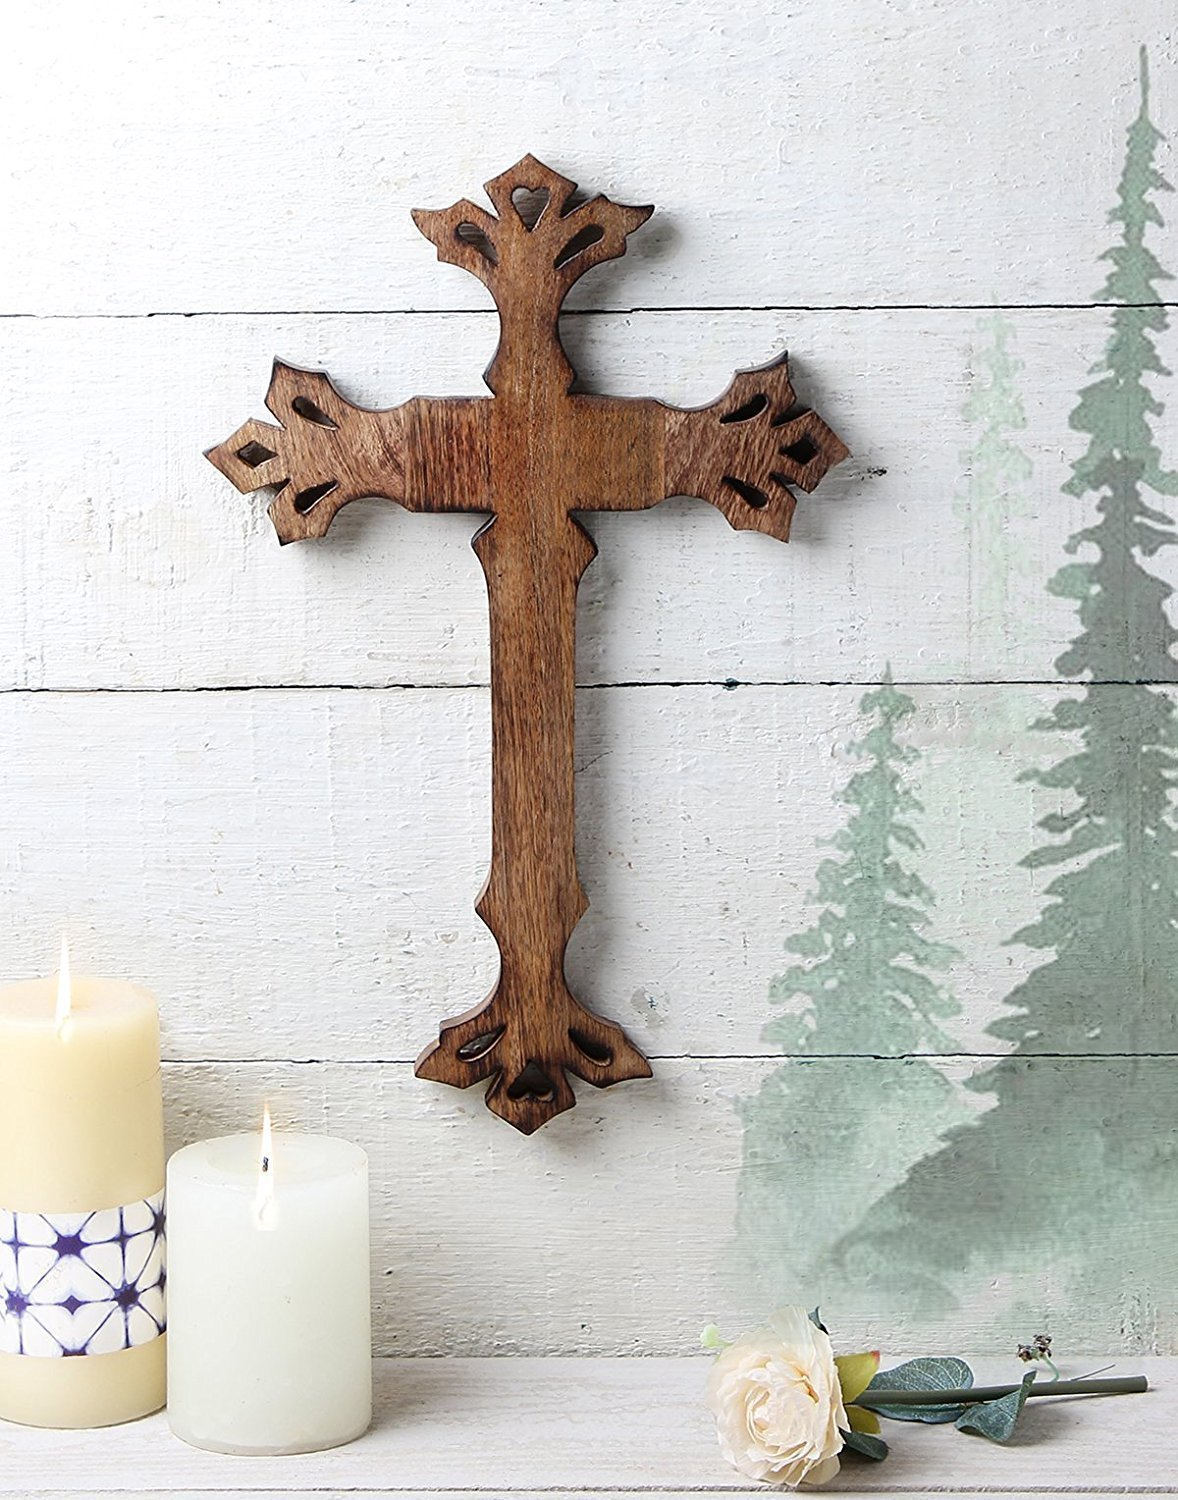 Christmas Gifts- Wooden Cross Wall Hanging With Handcrafted Antique Design in Walnut Finish Religious Altar for Home Décor Living Room Décor Accessory (Size: 40 x 33 cms) storeindya